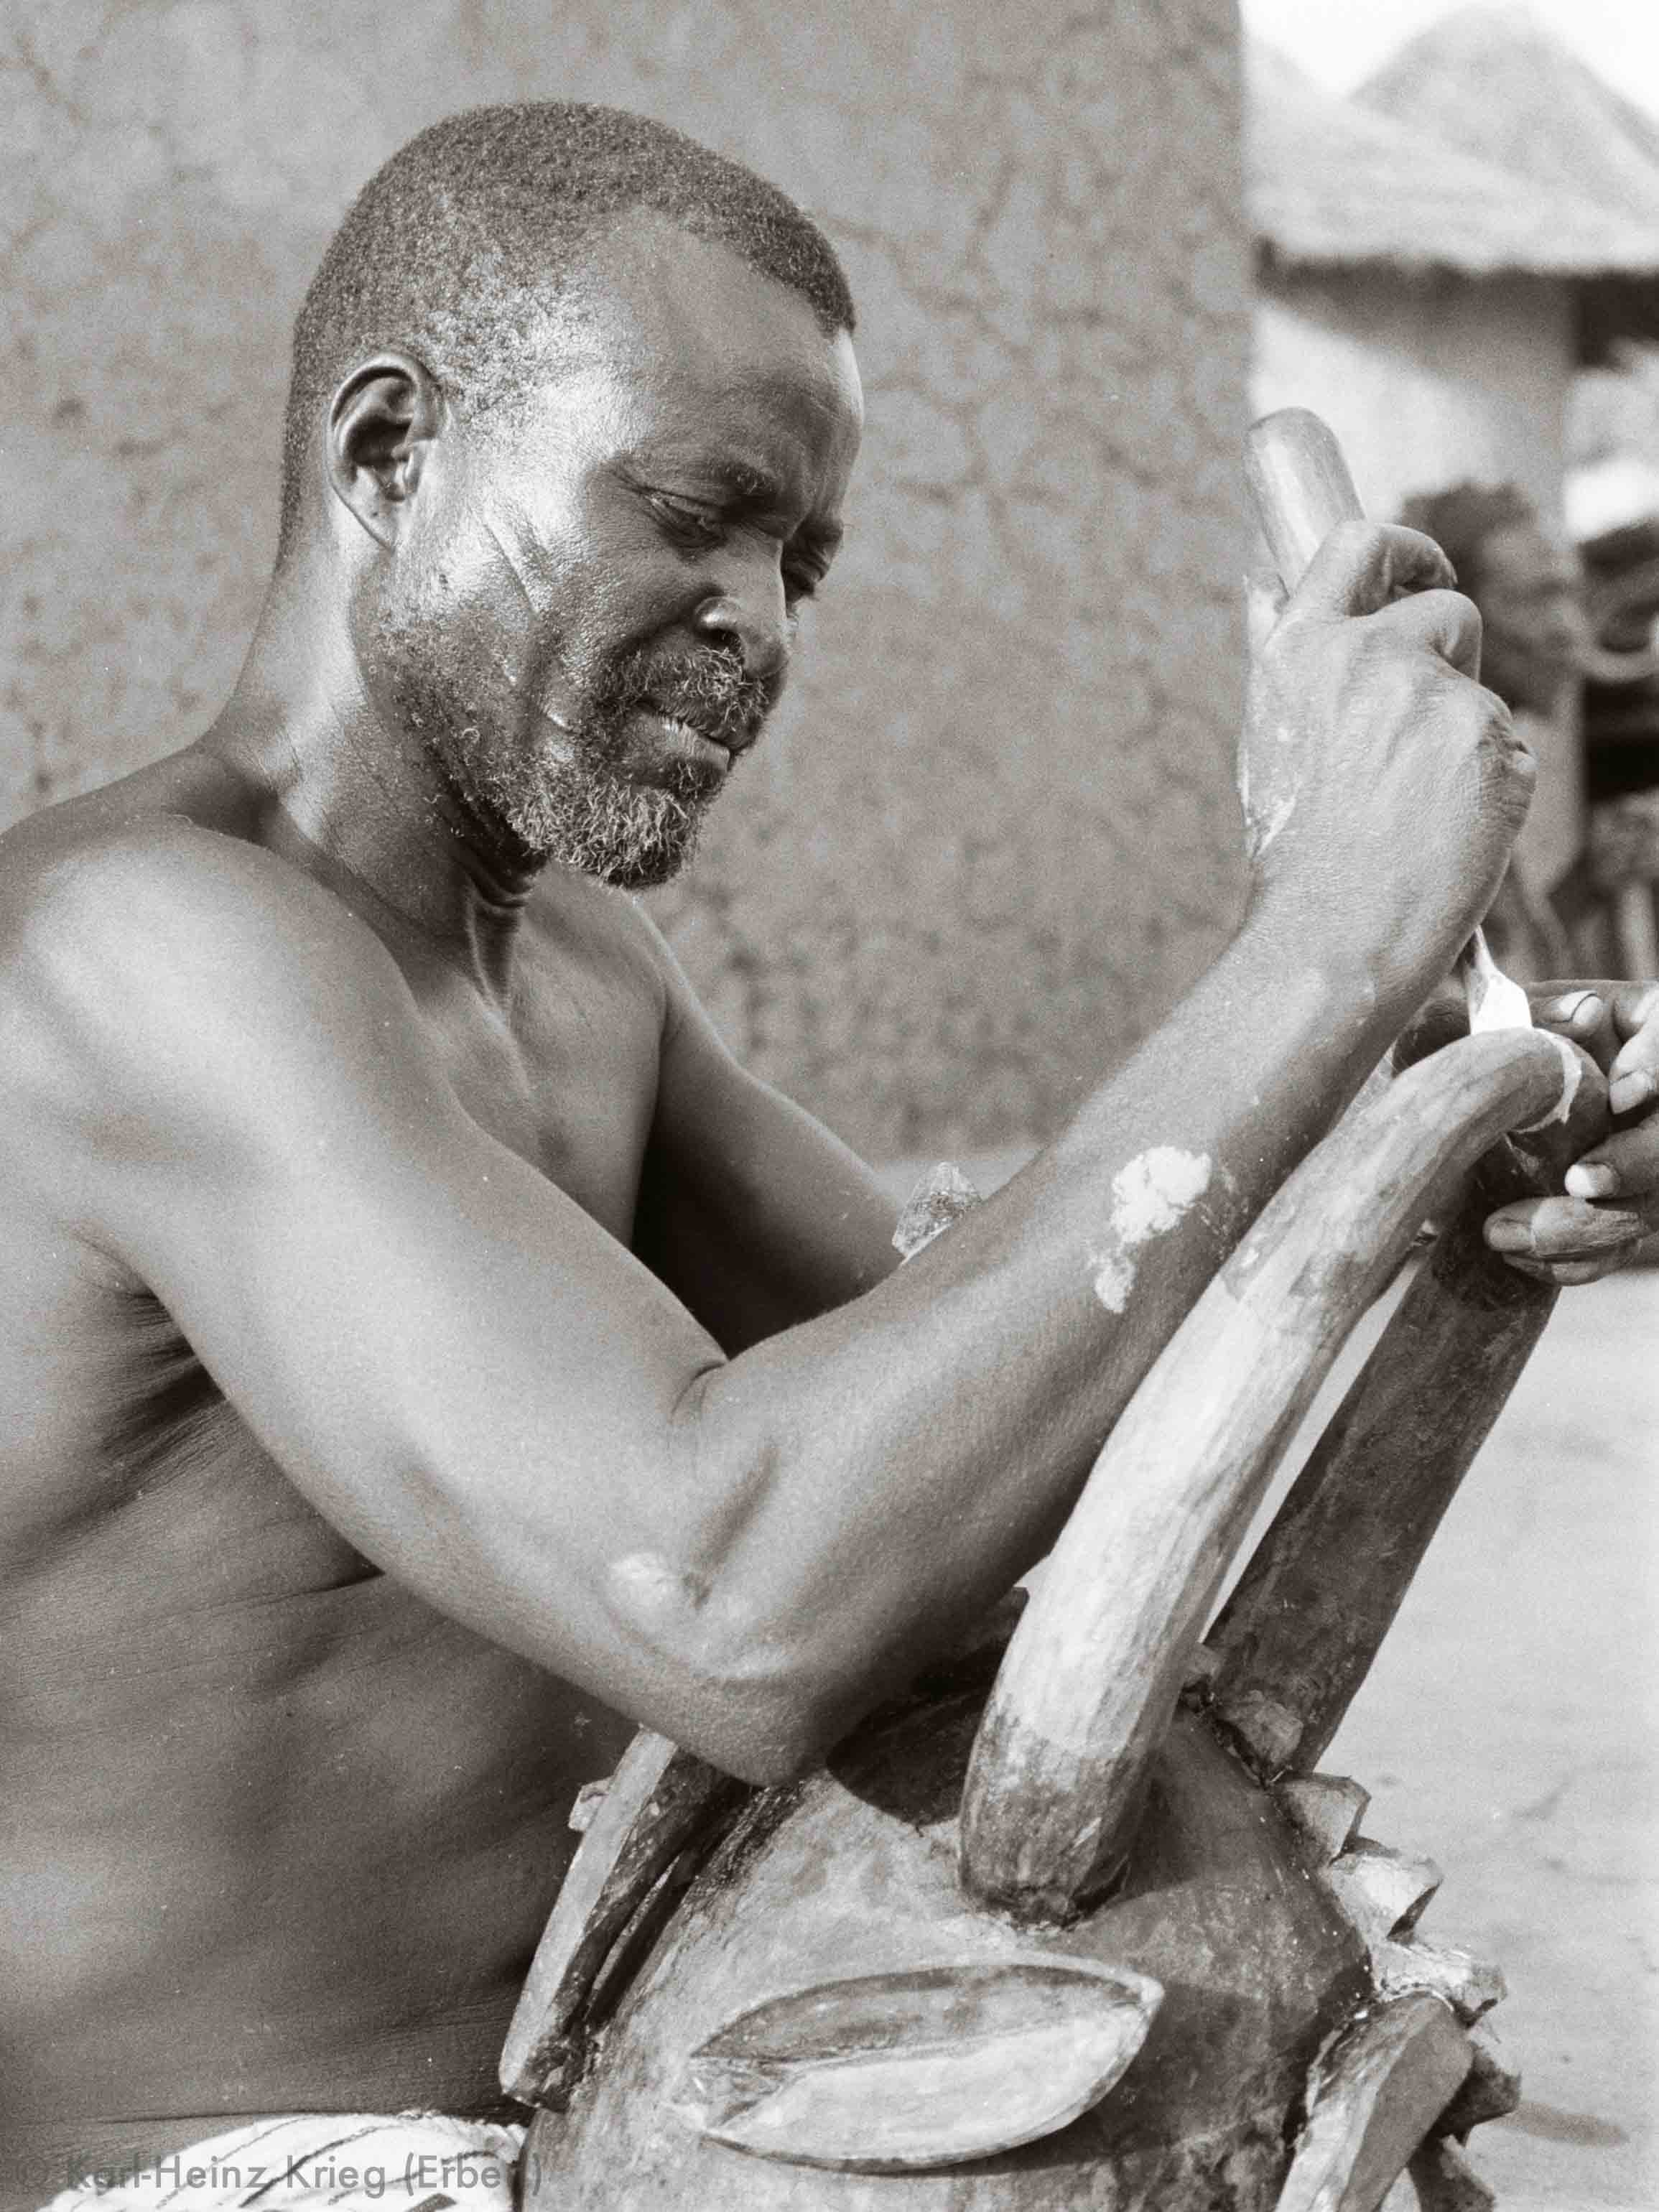 Karna Ouattara carving a helmet mask in his workplace. Photo: Karl-Heinz Krieg, Nafoun (Region of Boundiali, Côte d'Ivoire), 1975